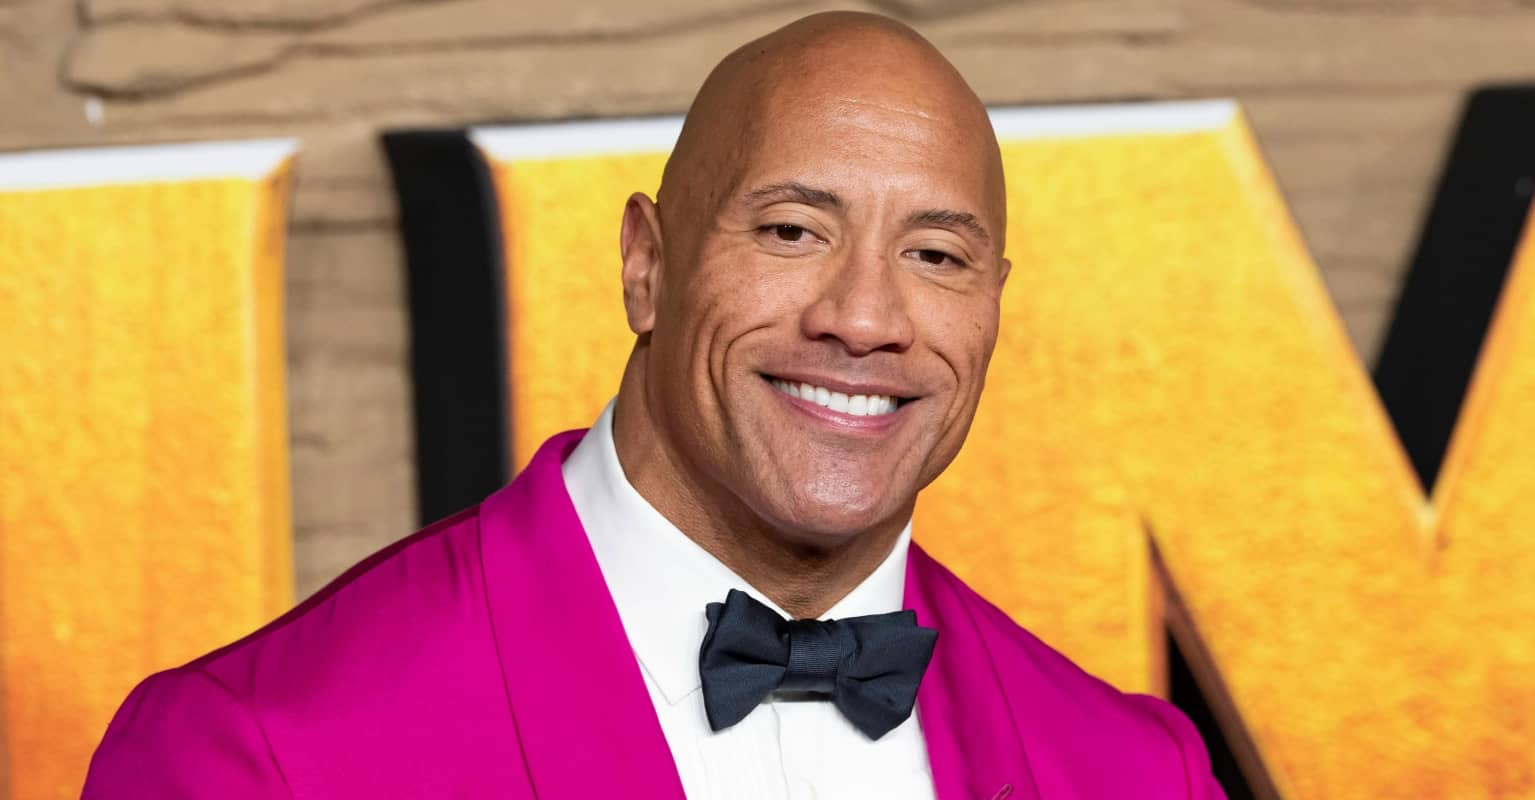 Dwayne Johnson says he 'would consider' a presidential run in the future